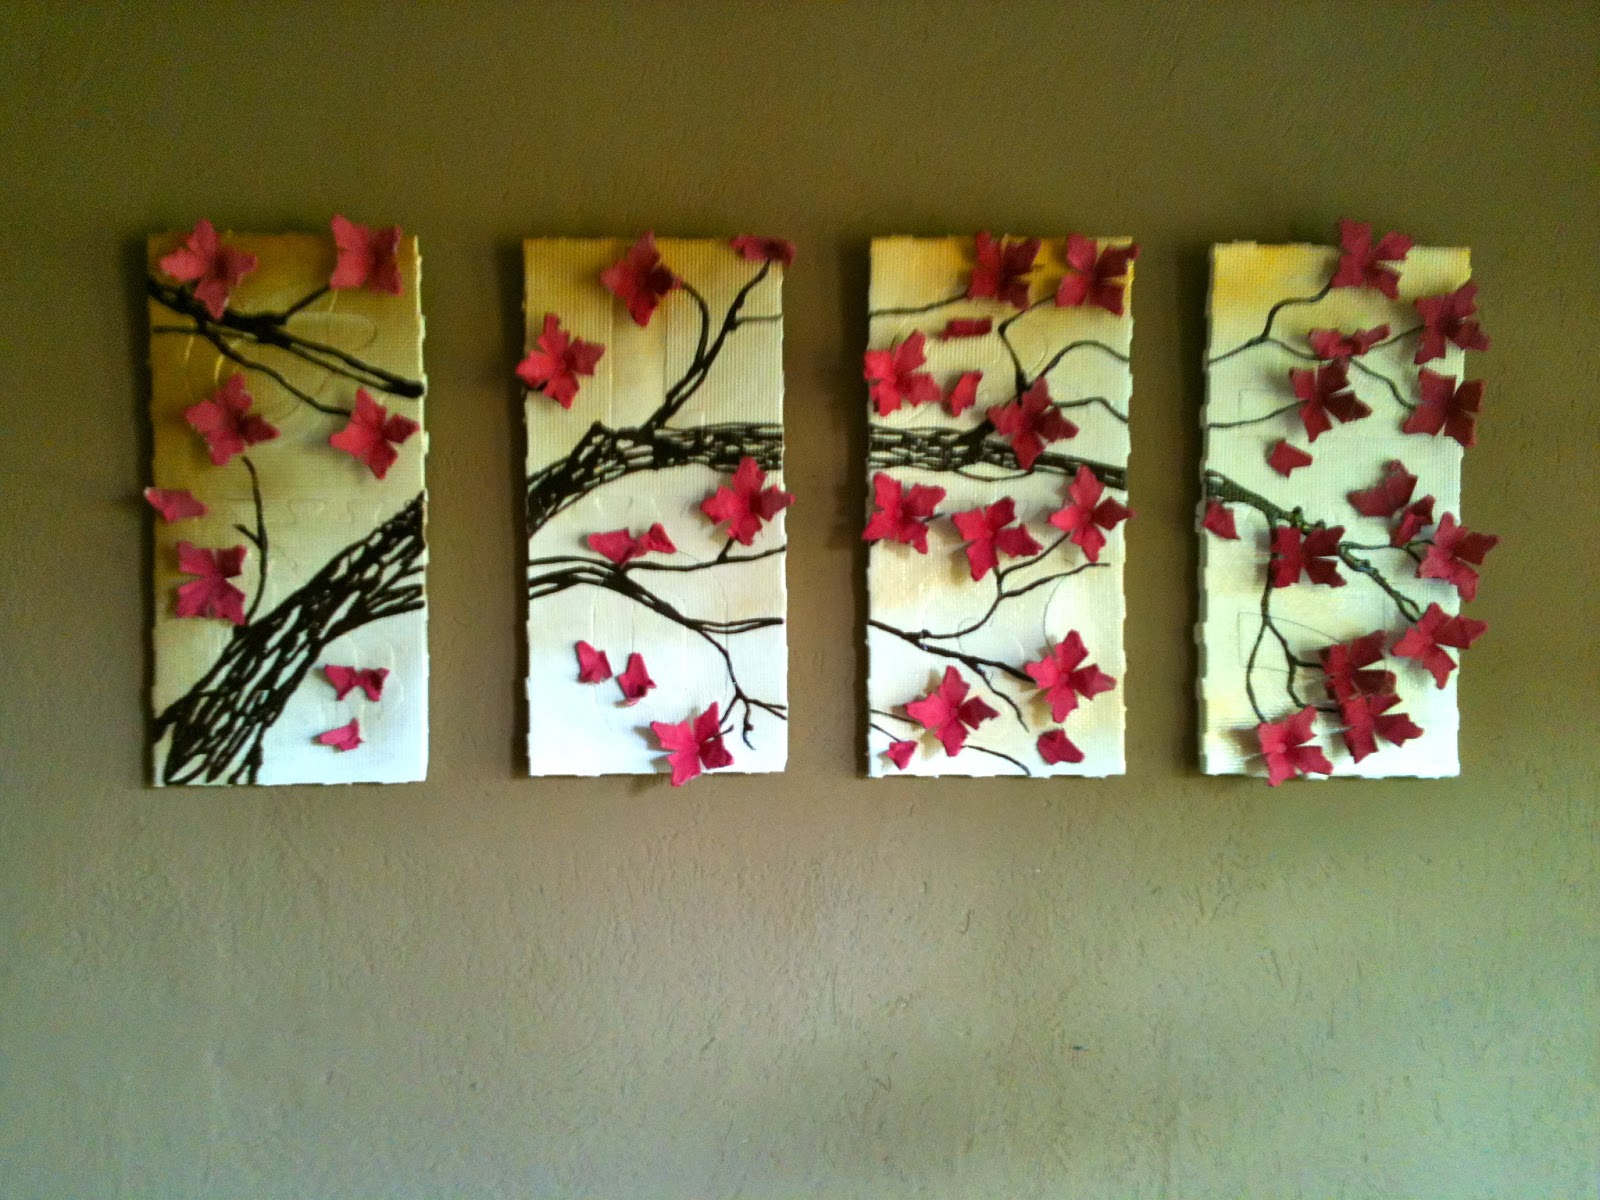 Upcycling DIY Wall Art: 4 Panel Cherry Blossom Tree ...